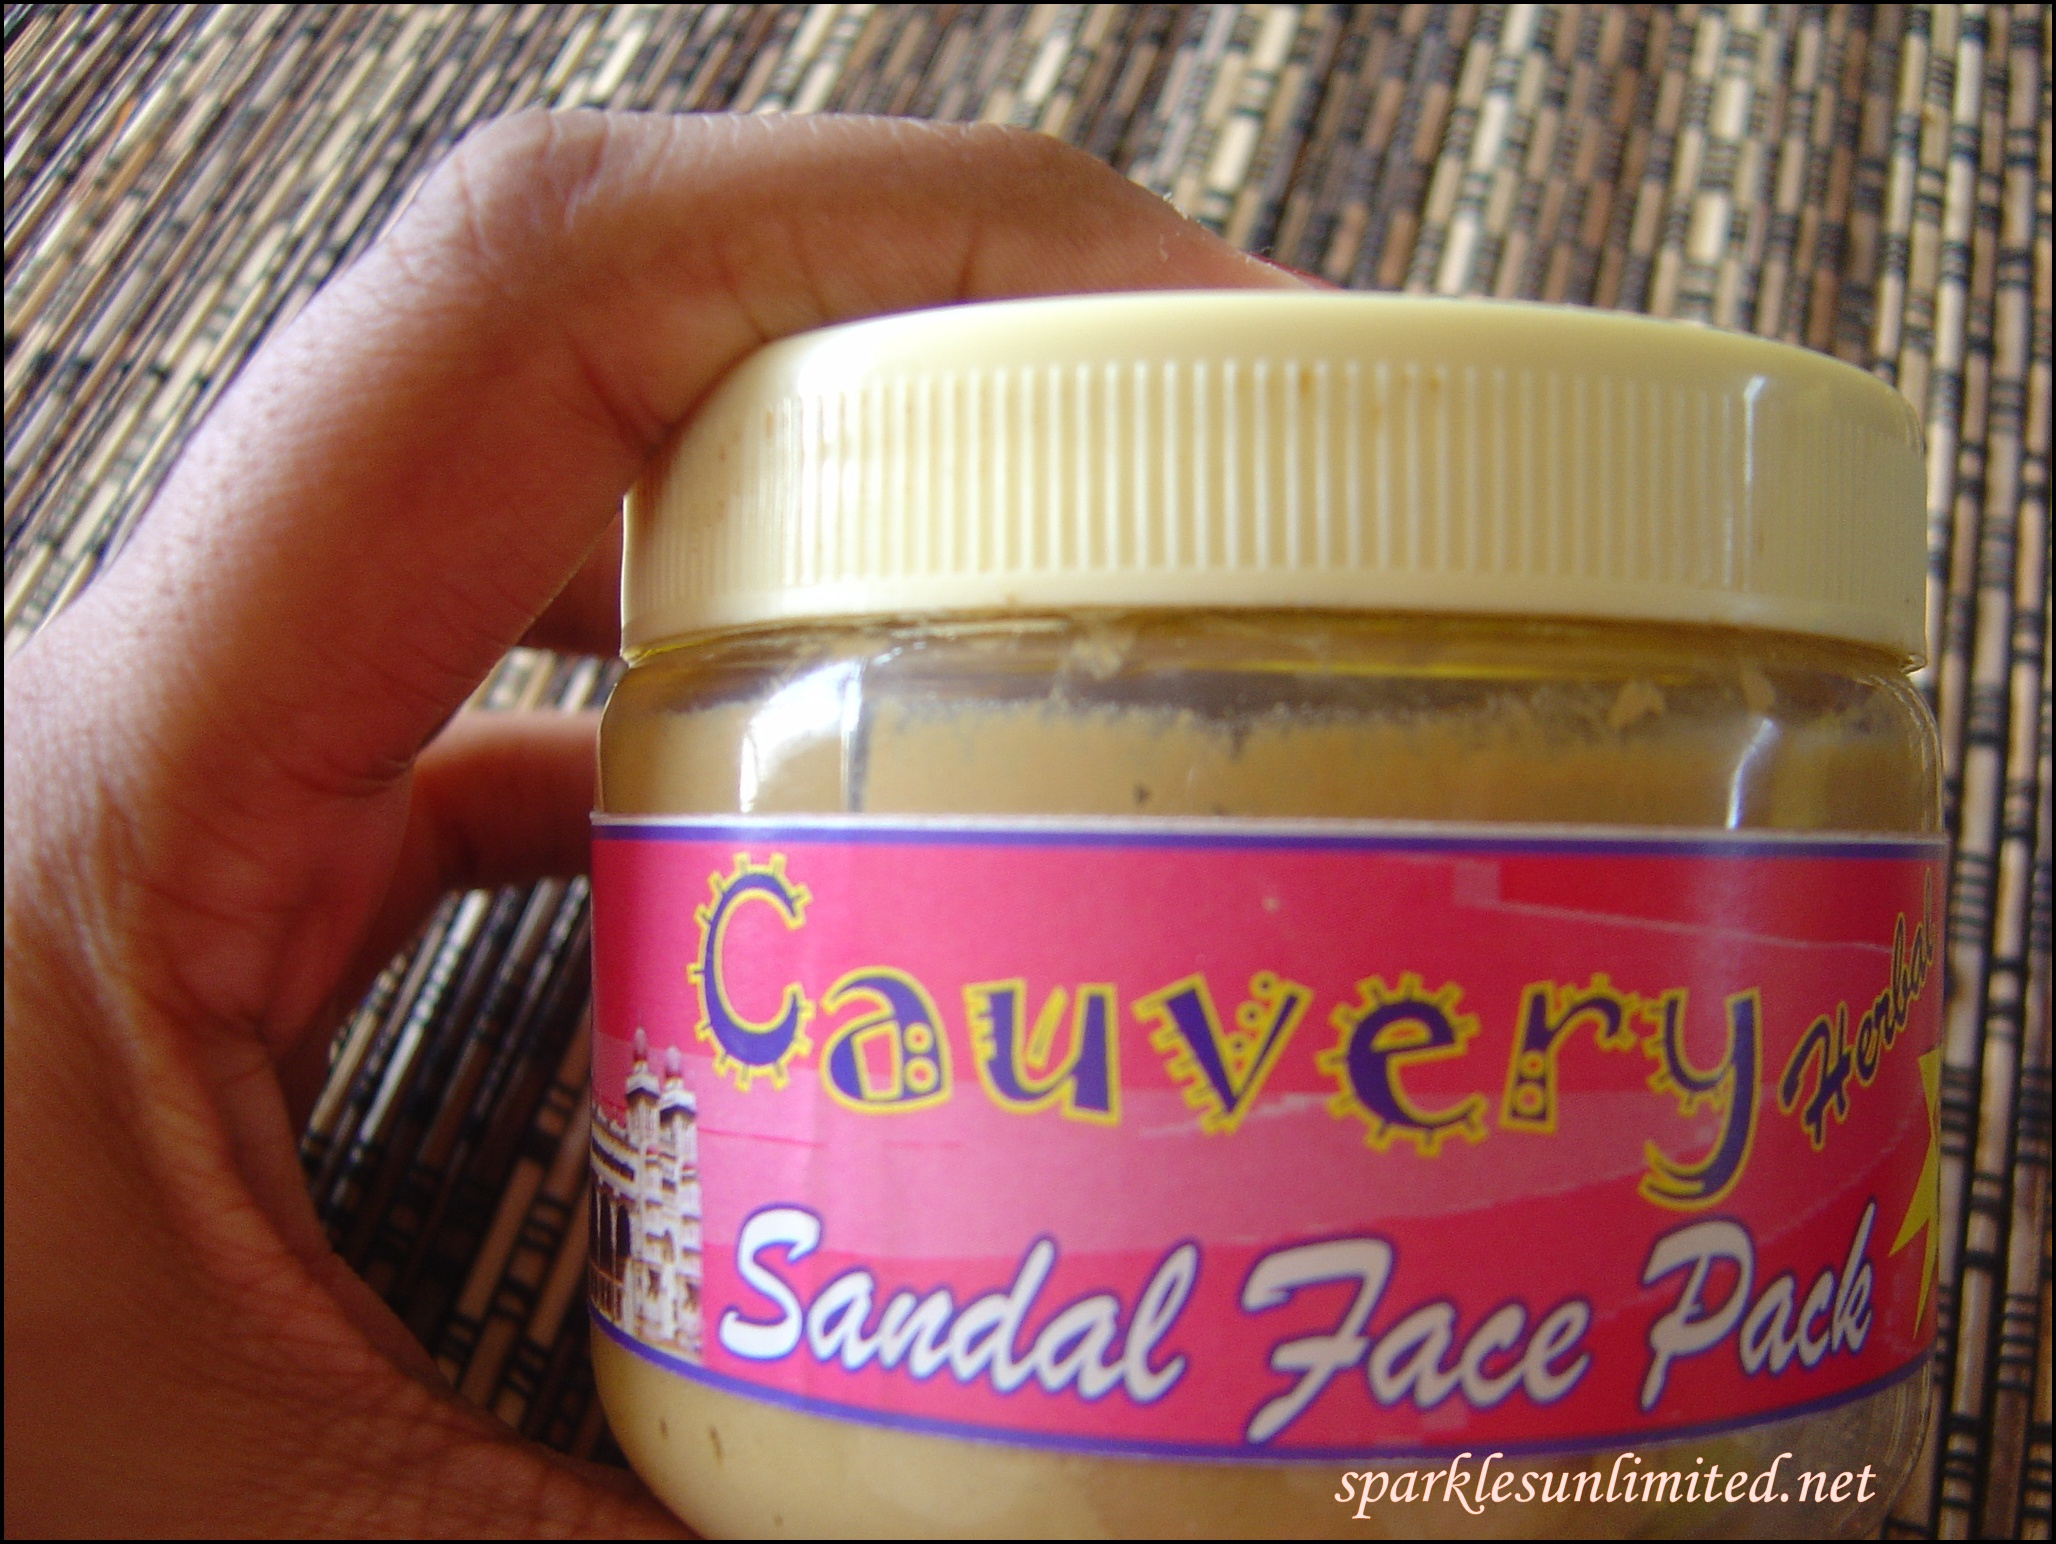 Cauvery sandal face pack